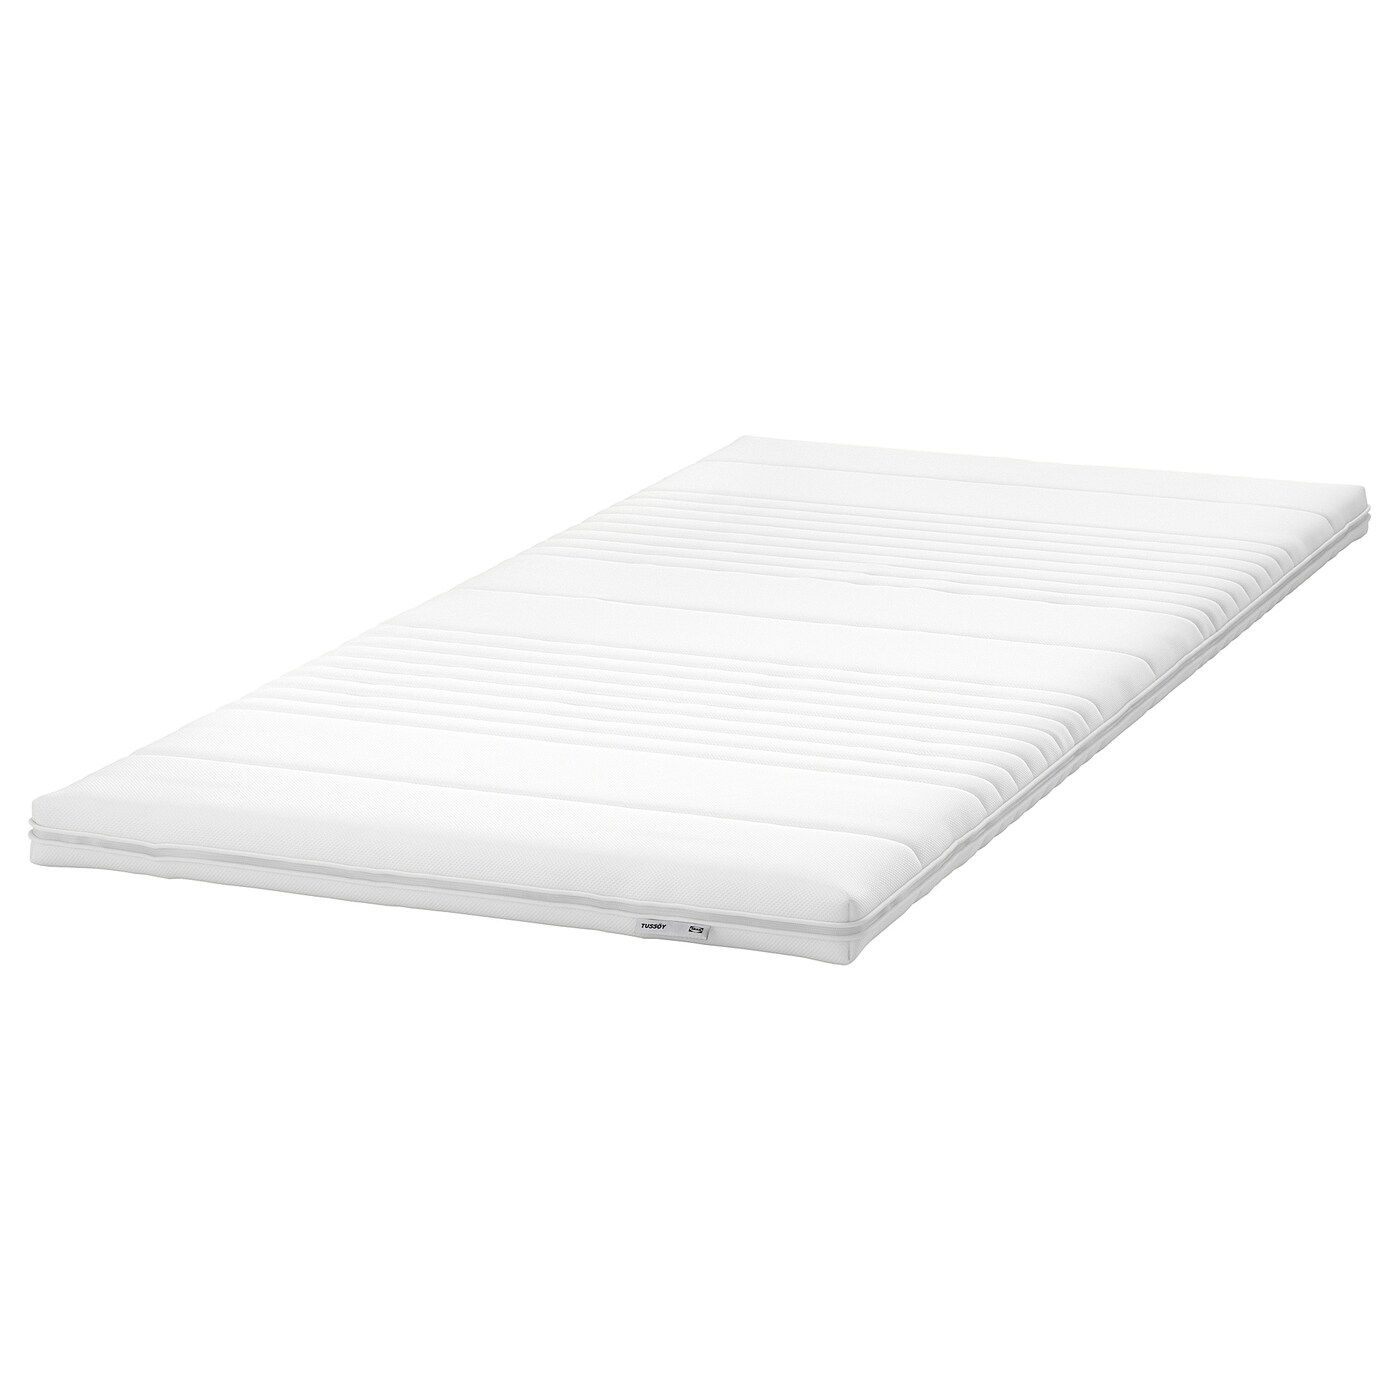 Tussoy Mattress Topper White Twin Ikea In 2020 Mattress Mattress Topper Foam Mattress